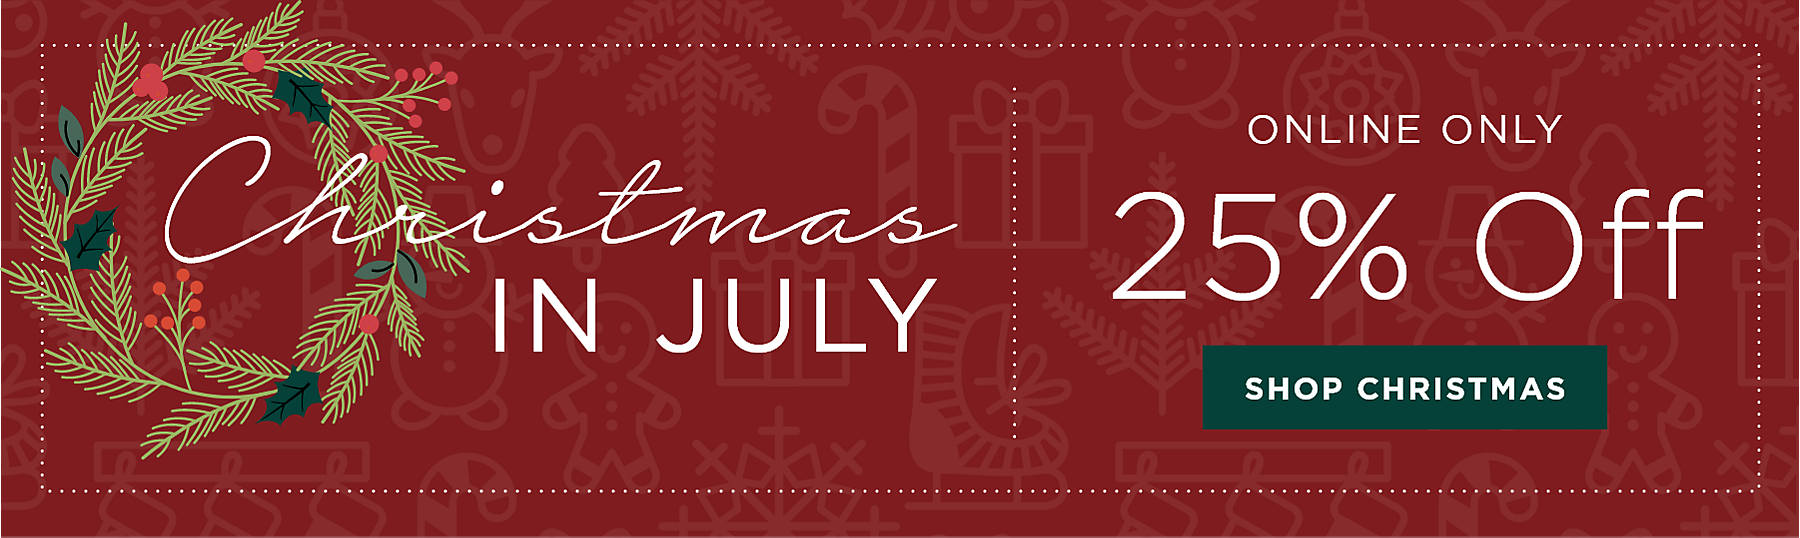 Christmas in July Online Only 25% Off Shop Christmas